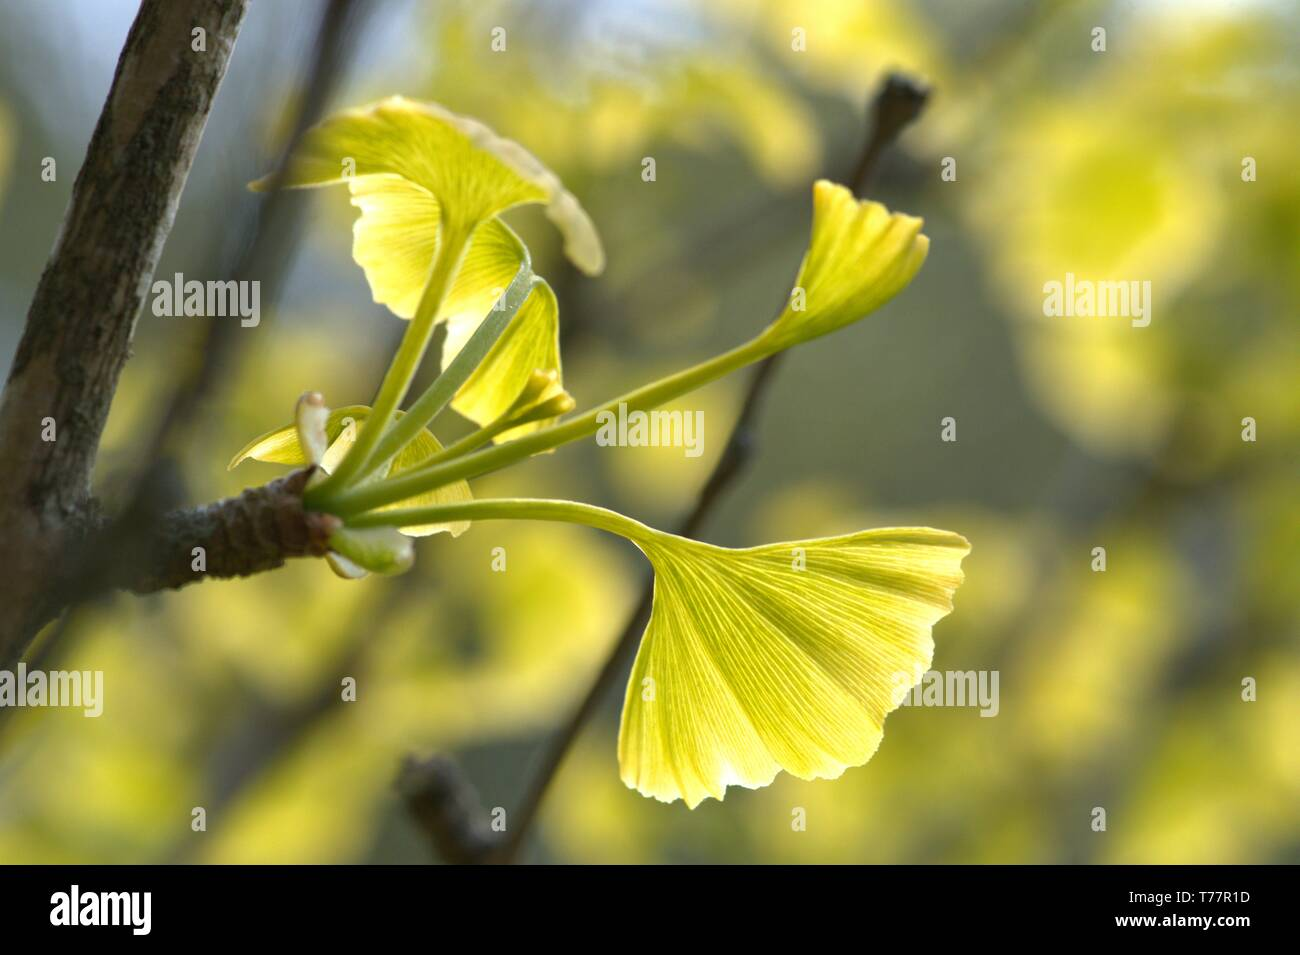 Schleswig, Deutschland. 05th May, 2019. 05.05.2019, Schleswig-Holstein, Schleswig: Close-up of some freshly sprouting ginkgo leaves on a ginkgo tree in spring. Class: Ginkgo Plants (Ginkgoopsida), Order: Ginkgoales, Family: Ginkgo Waxes, Genus: Ginkgo, Species: Ginkgo   usage worldwide Credit: dpa/Alamy Live News - Stock Image